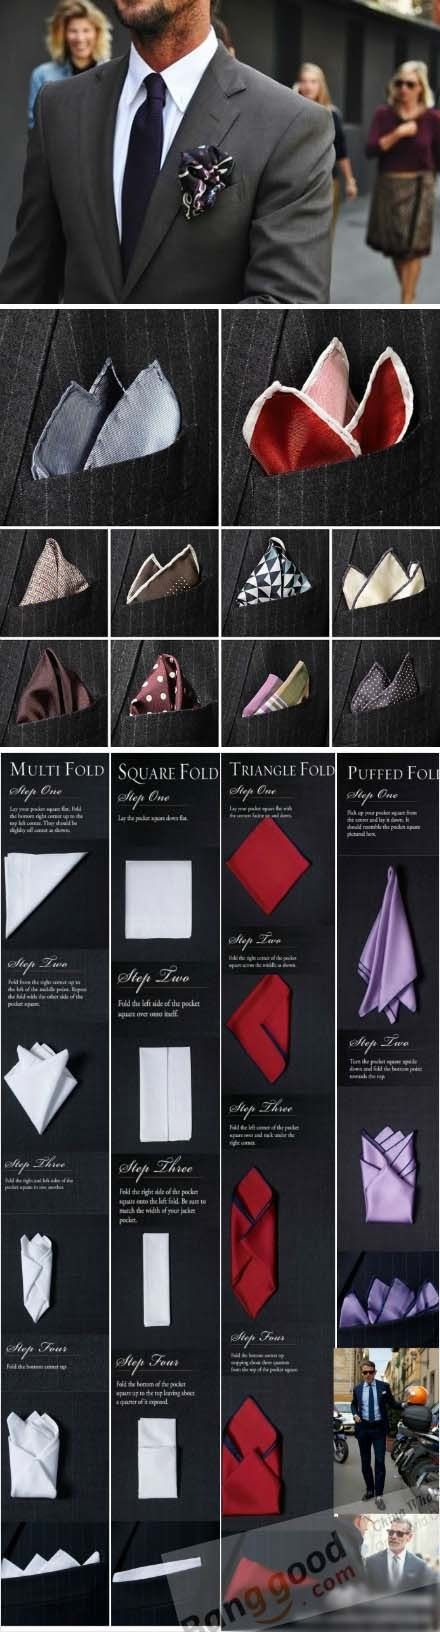 Pocket square foldings